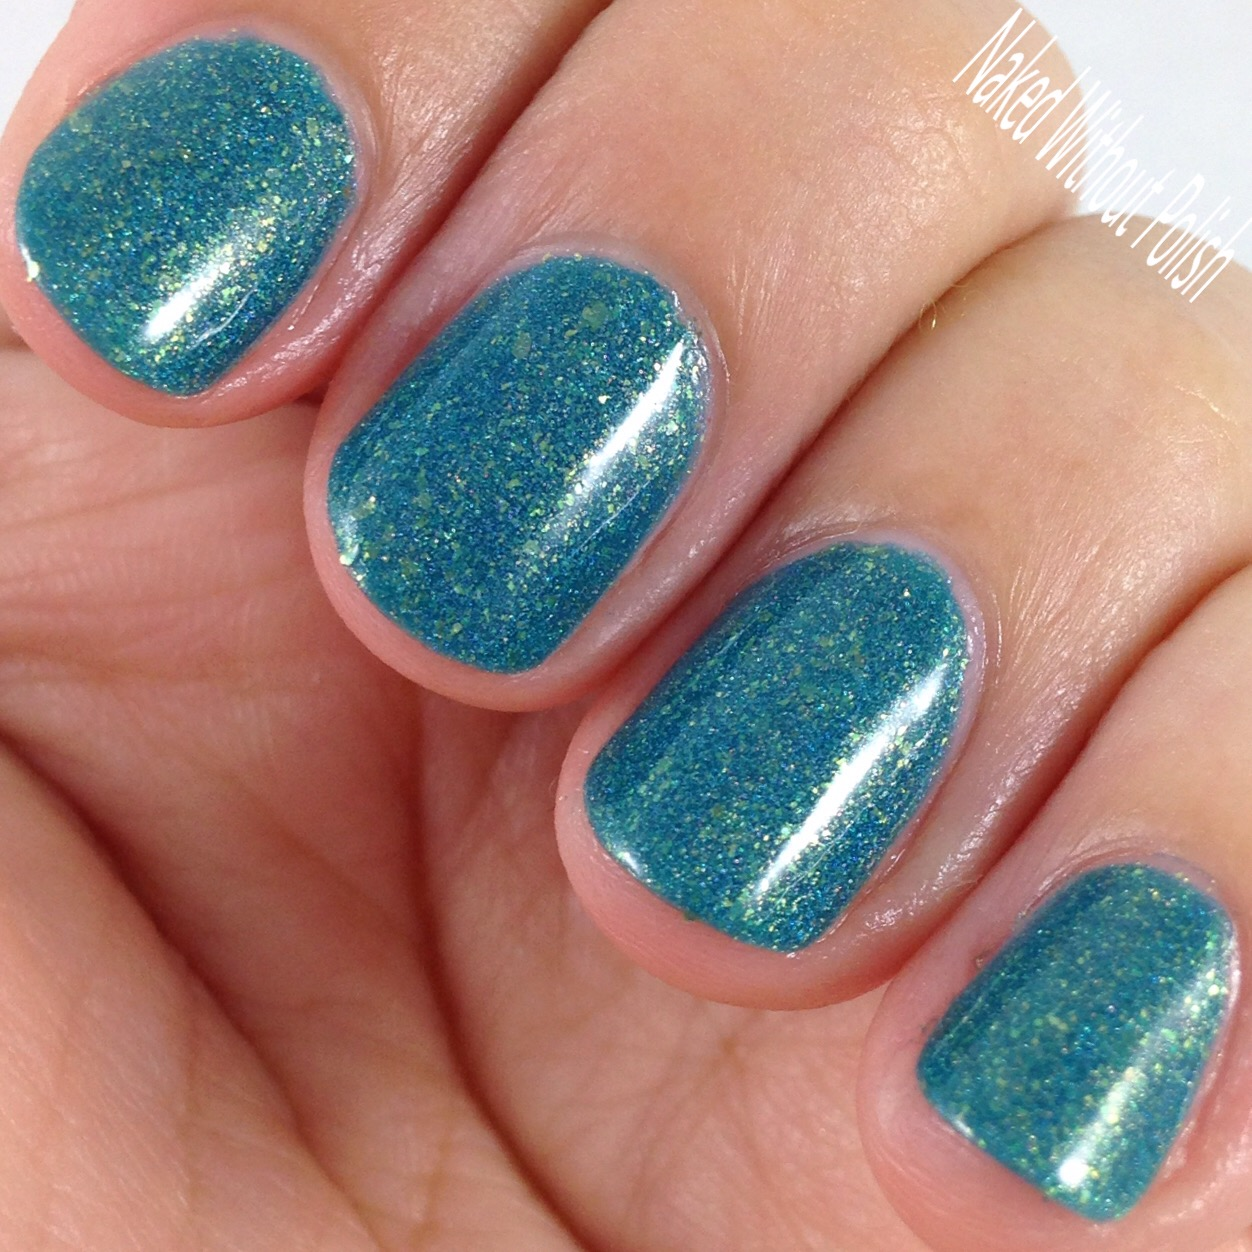 Turtle-Tootsie-Polishes-Summer-Dreams-Ripped-at-the-Seams-8